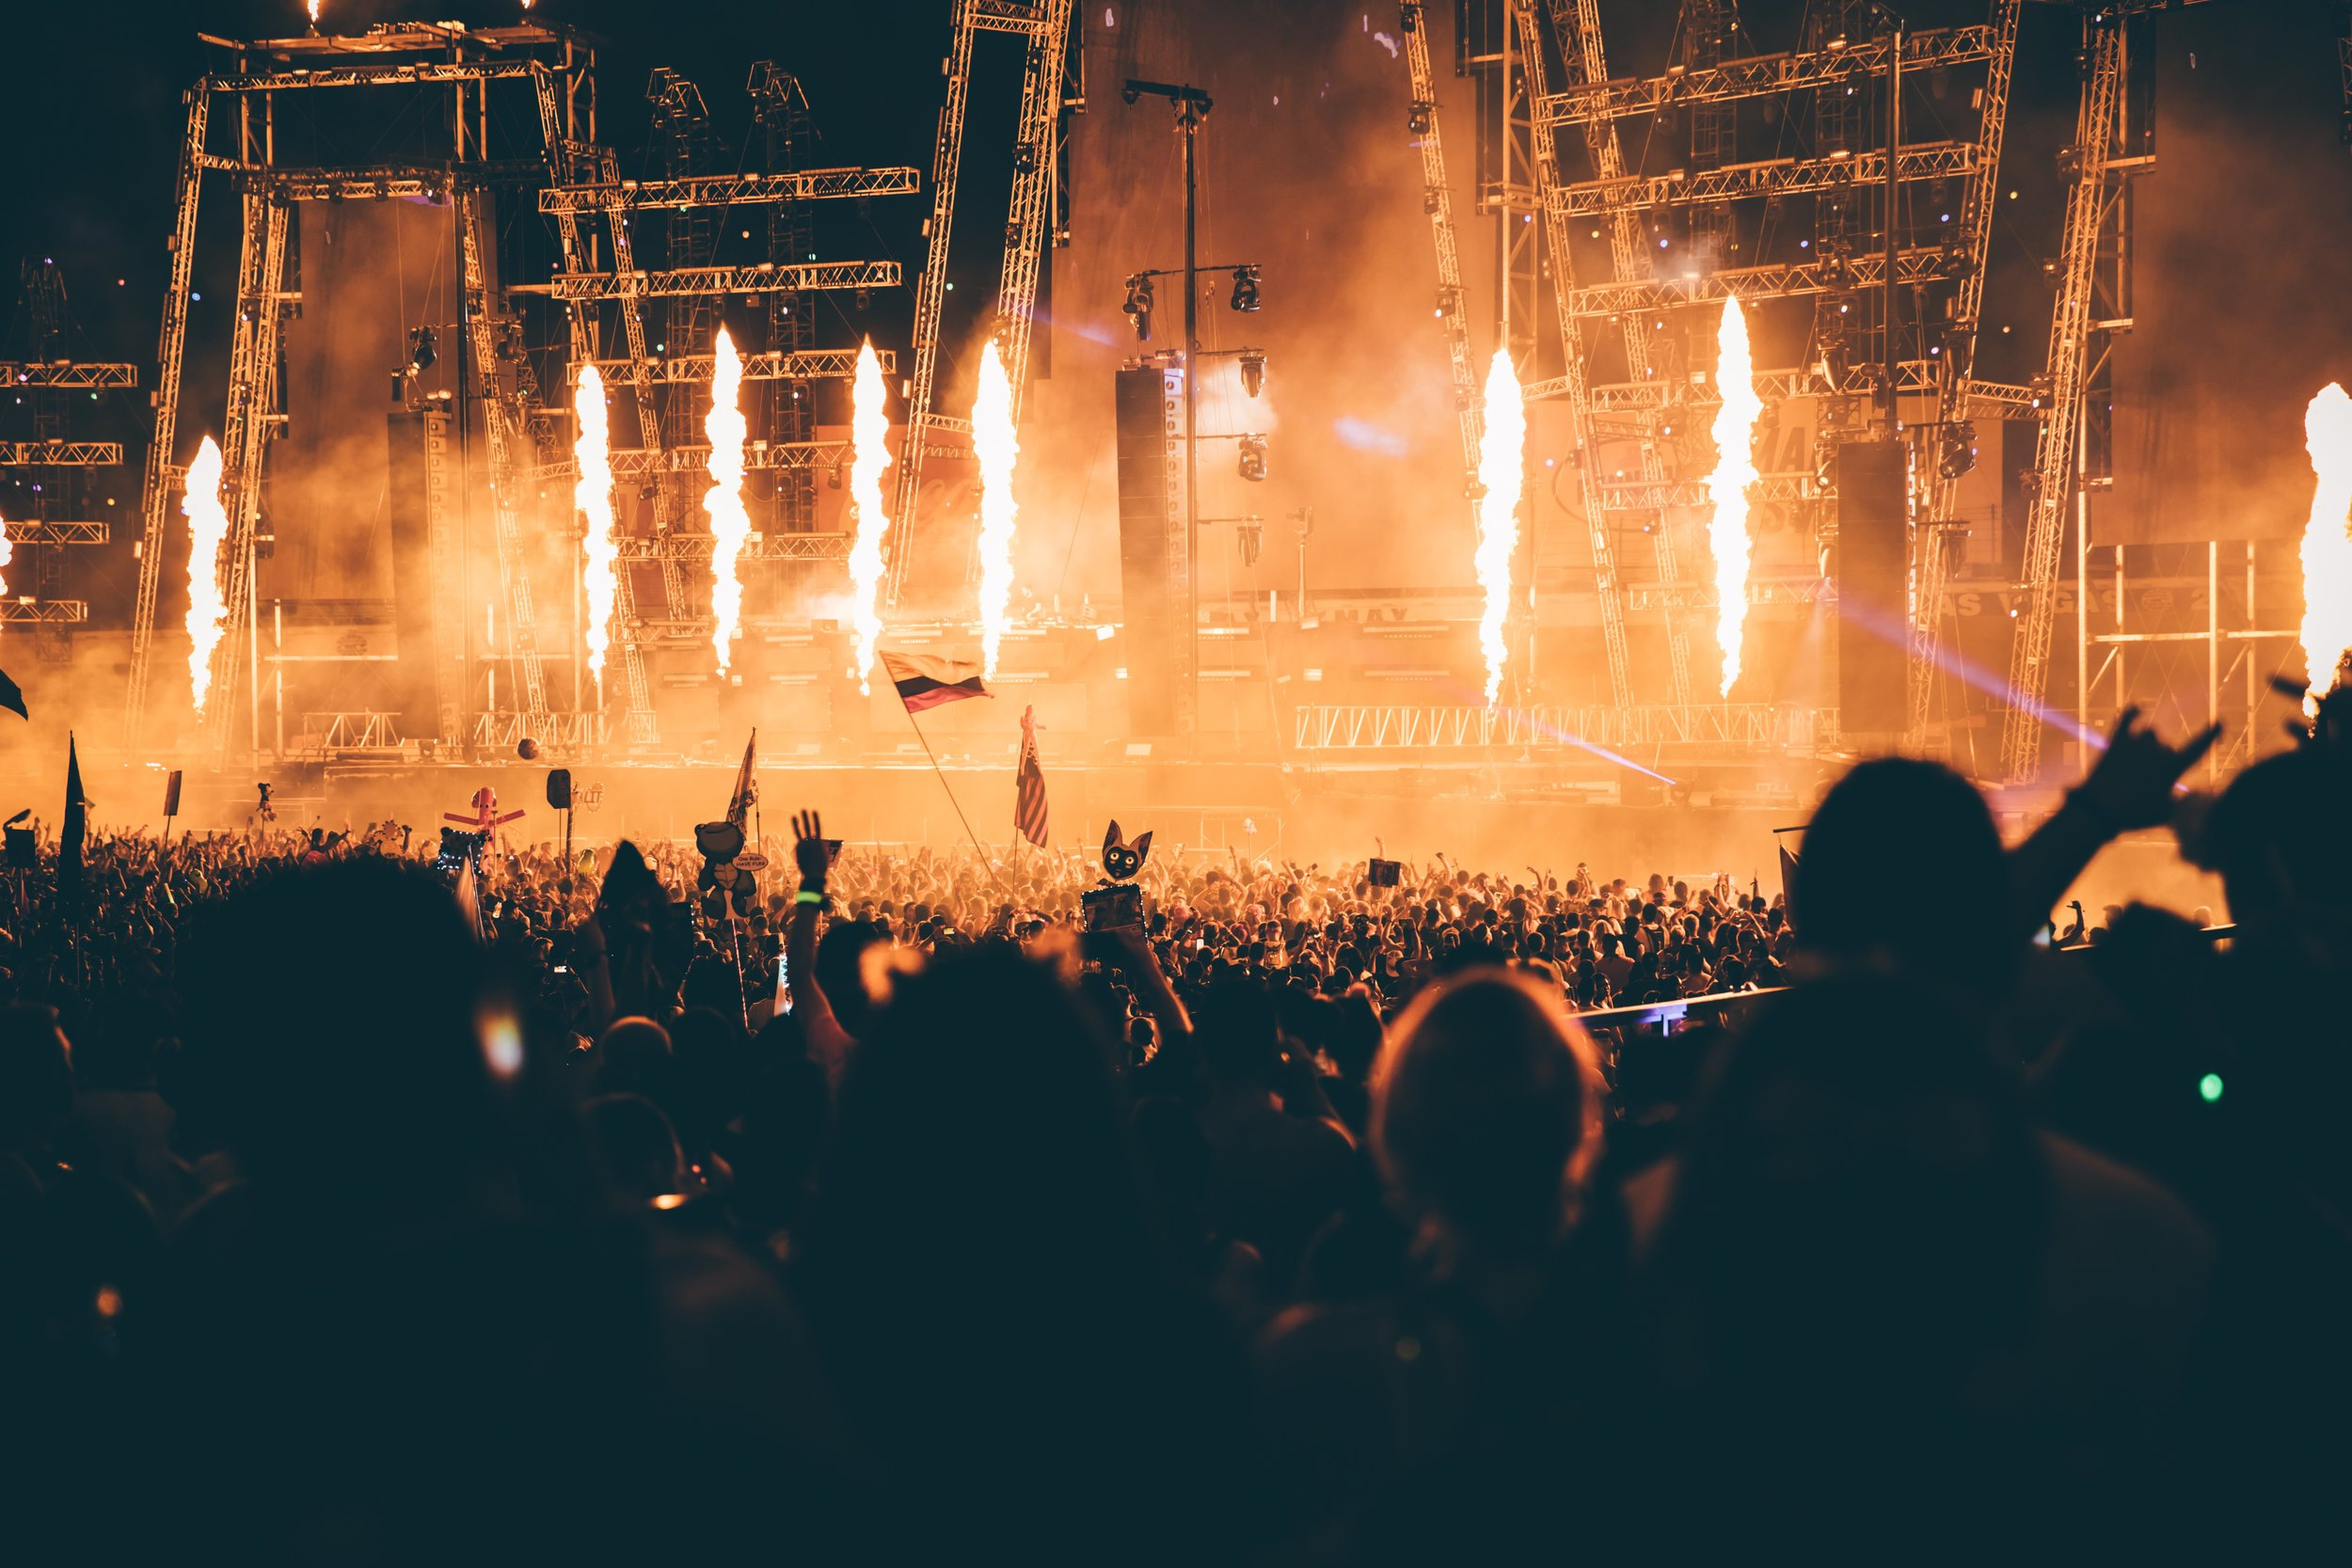 Huge crowd of people at a music festival concert with fire on stage.